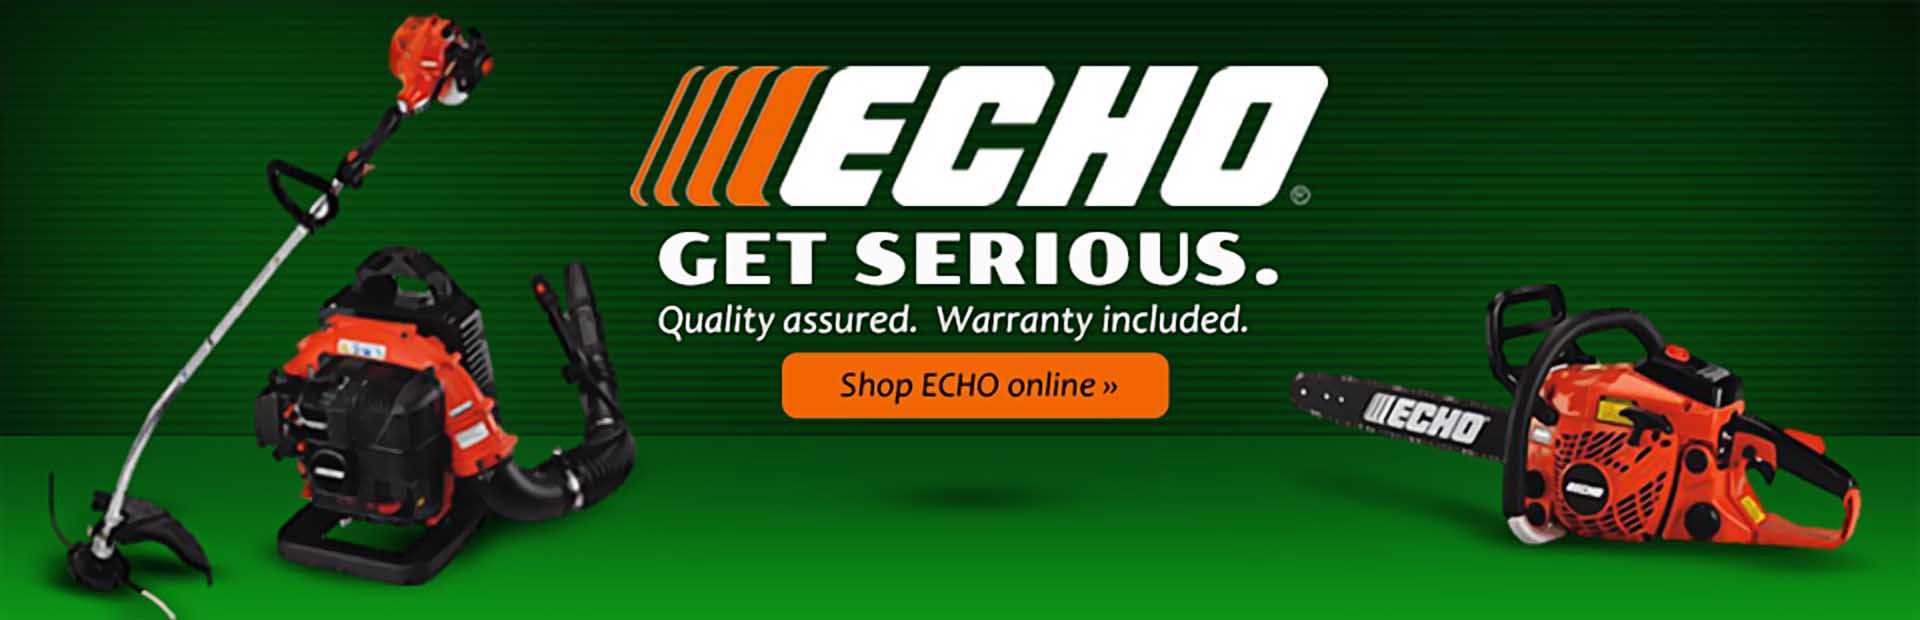 ECHO: Quality assured. Warranty included. Click here to shop ECHO online.